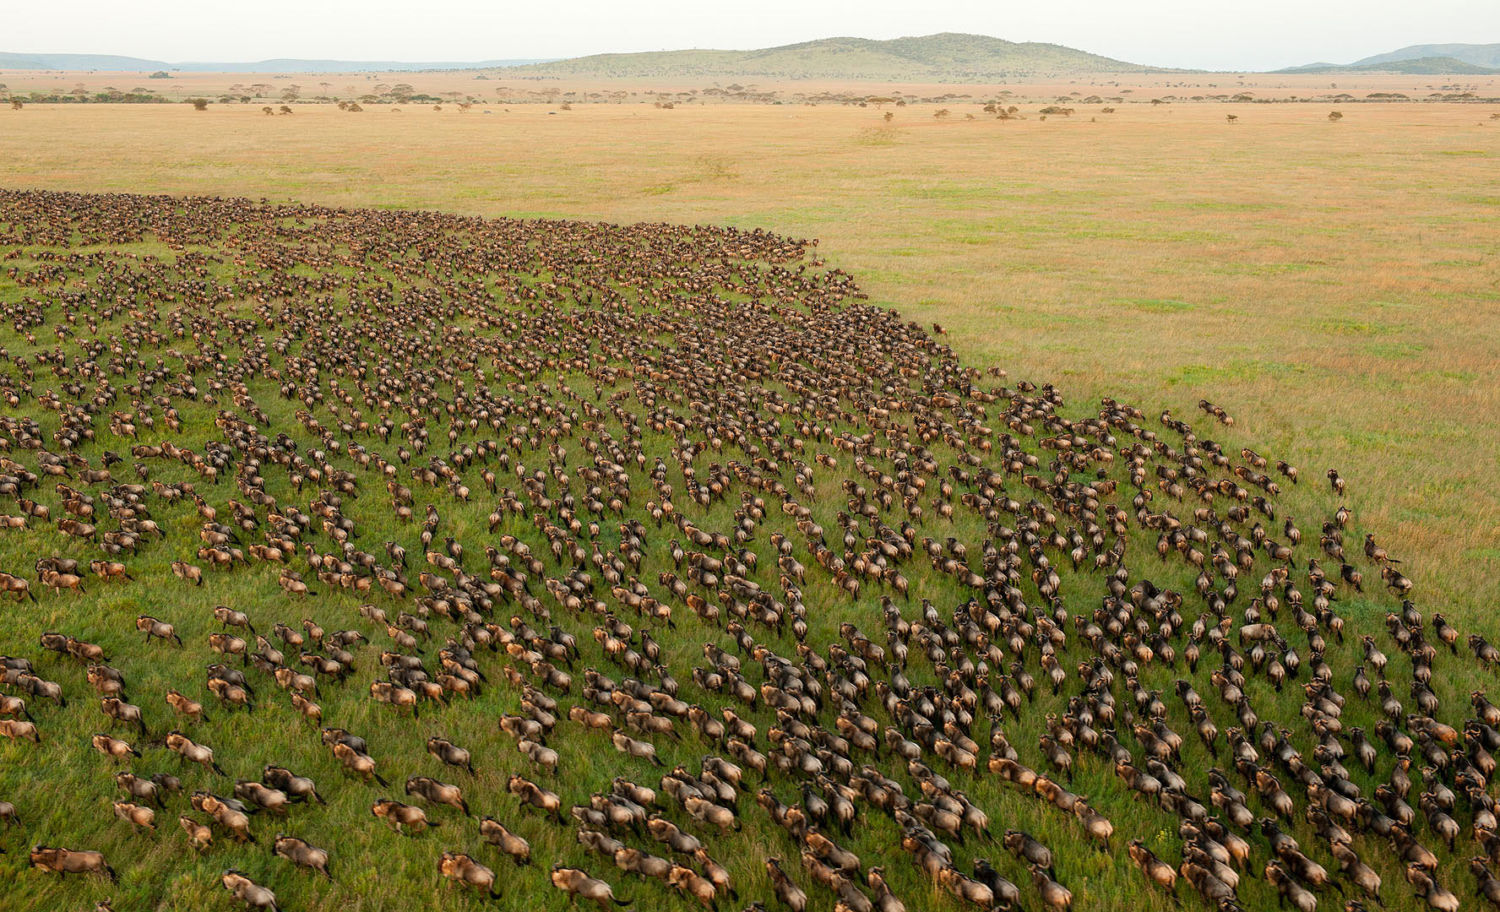 More than 1.5 million wildebeest migrate annually across Tanzania s  Serengeti National Park f431b43998163